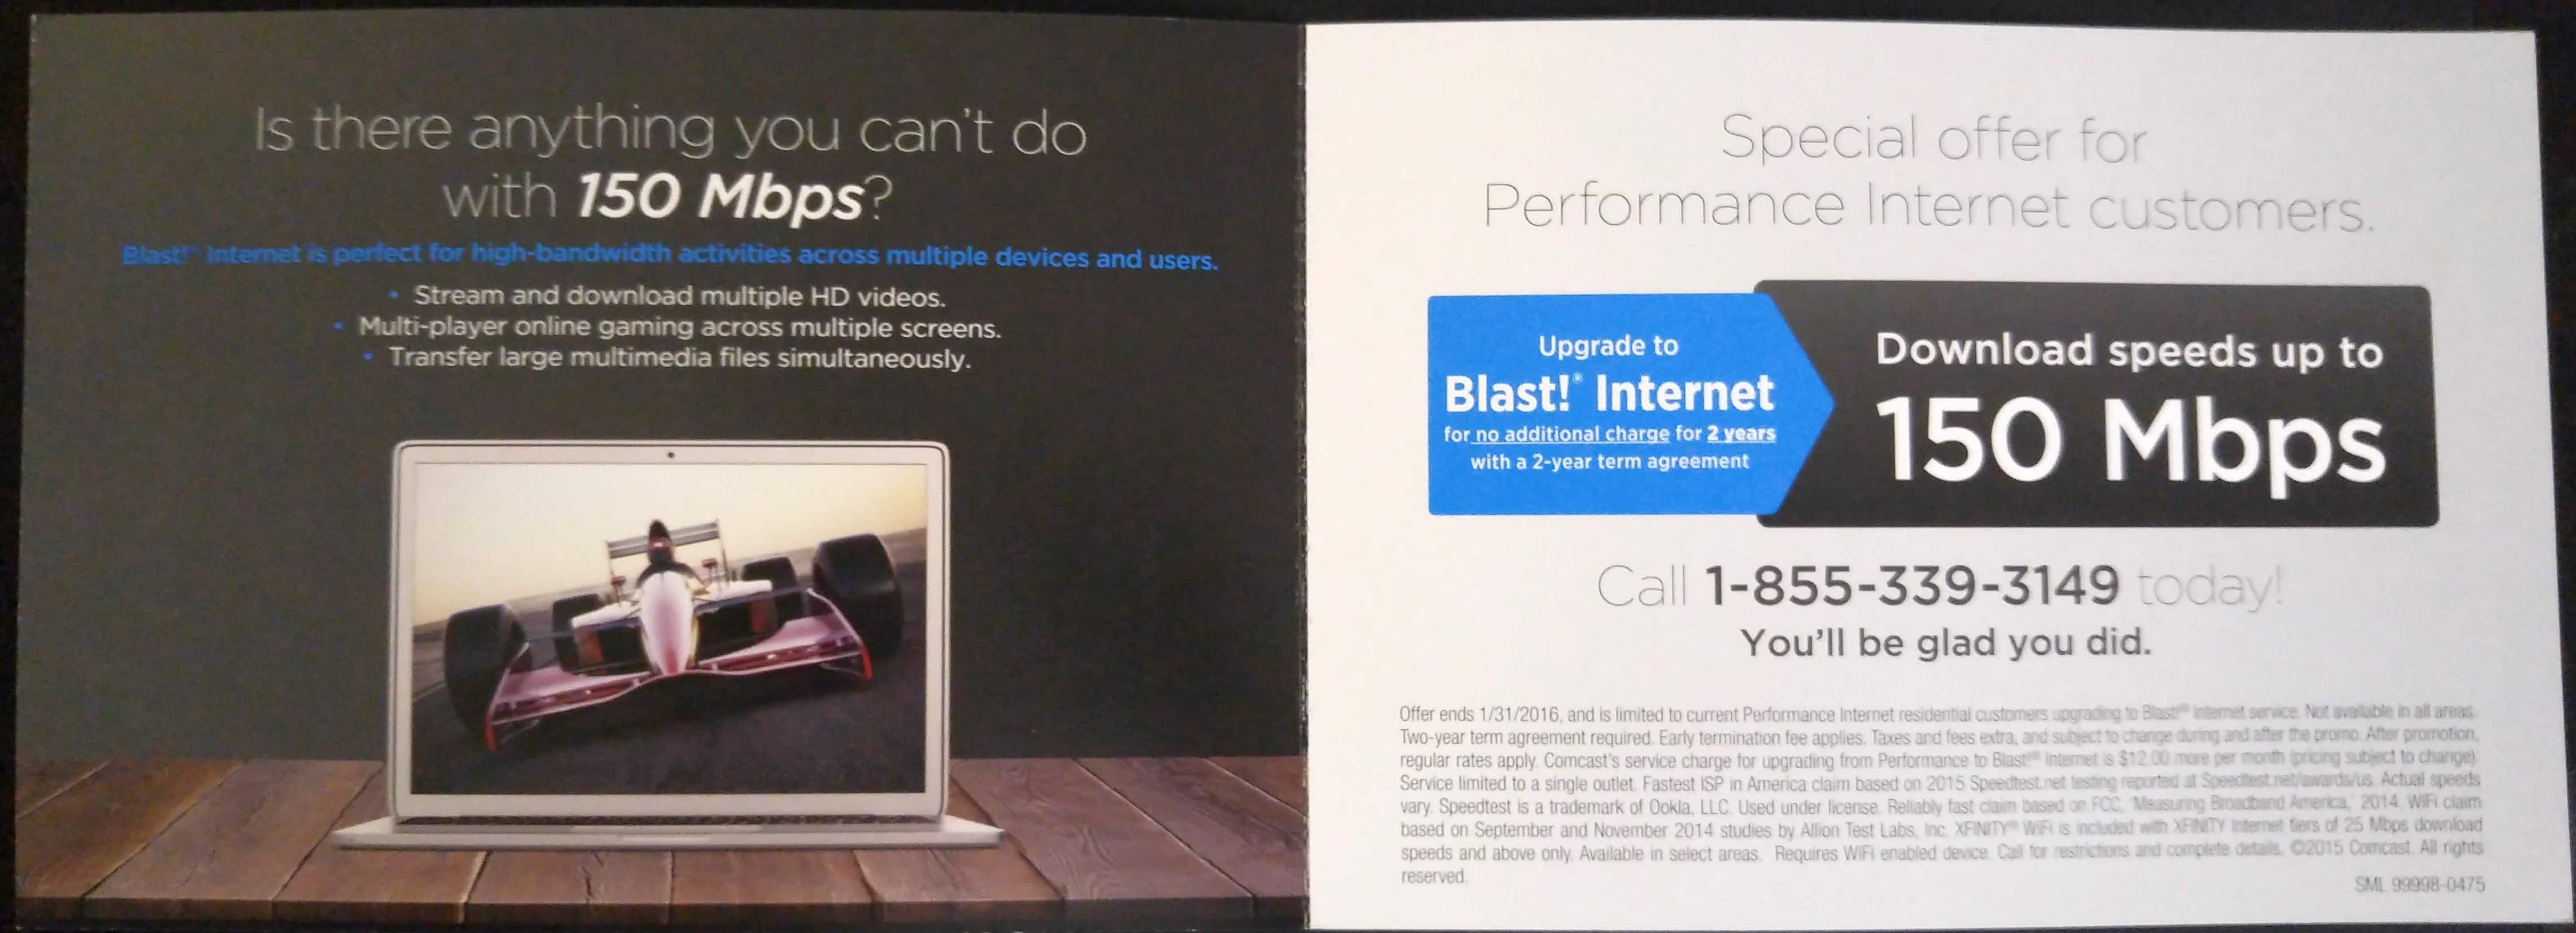 Comcast Free upgrade to Blast - 150 Mbps for current performance internet customers.